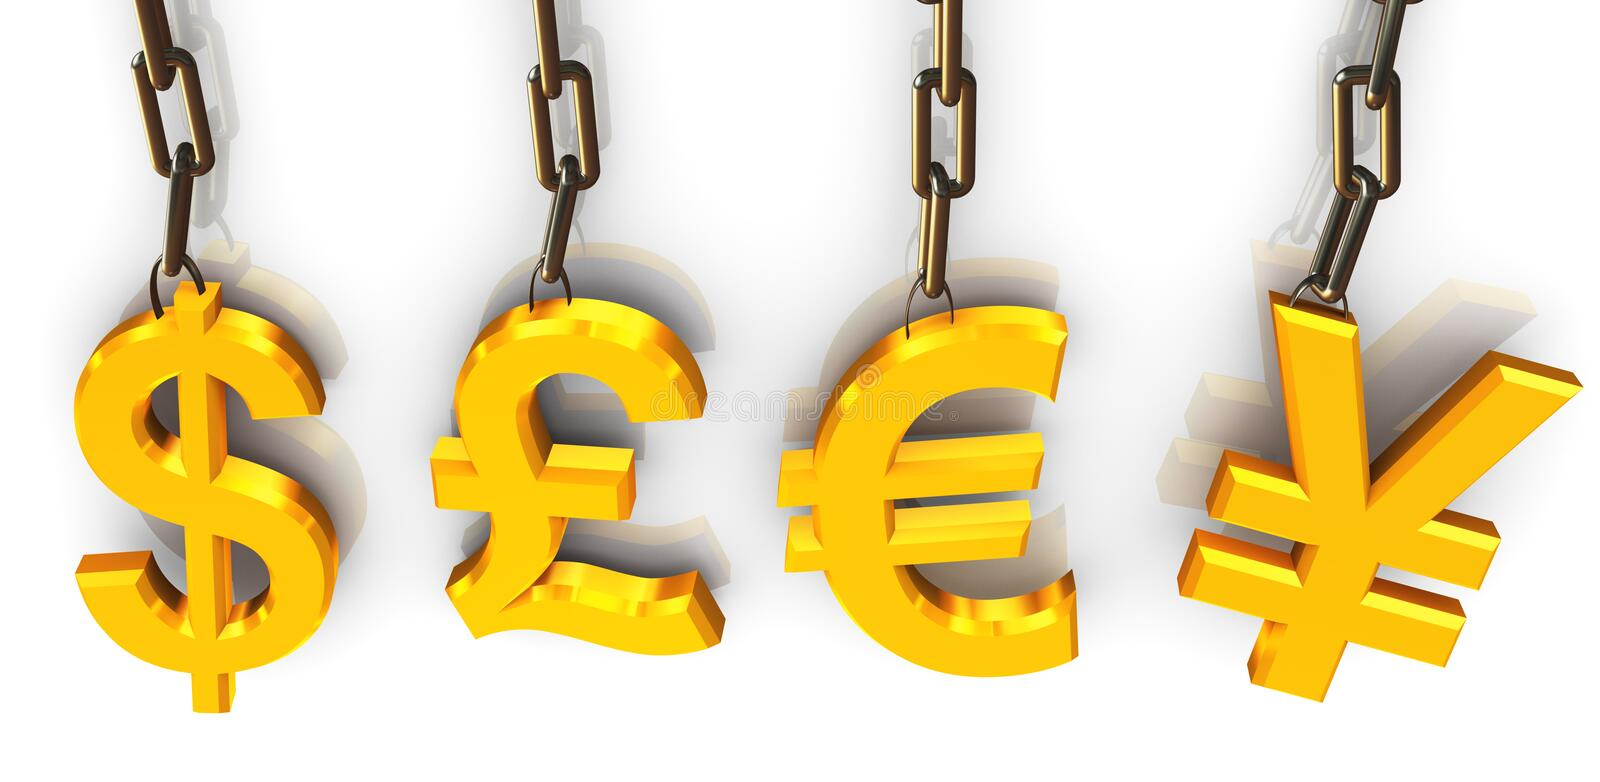 3d hanged currencies symbol royalty free illustration